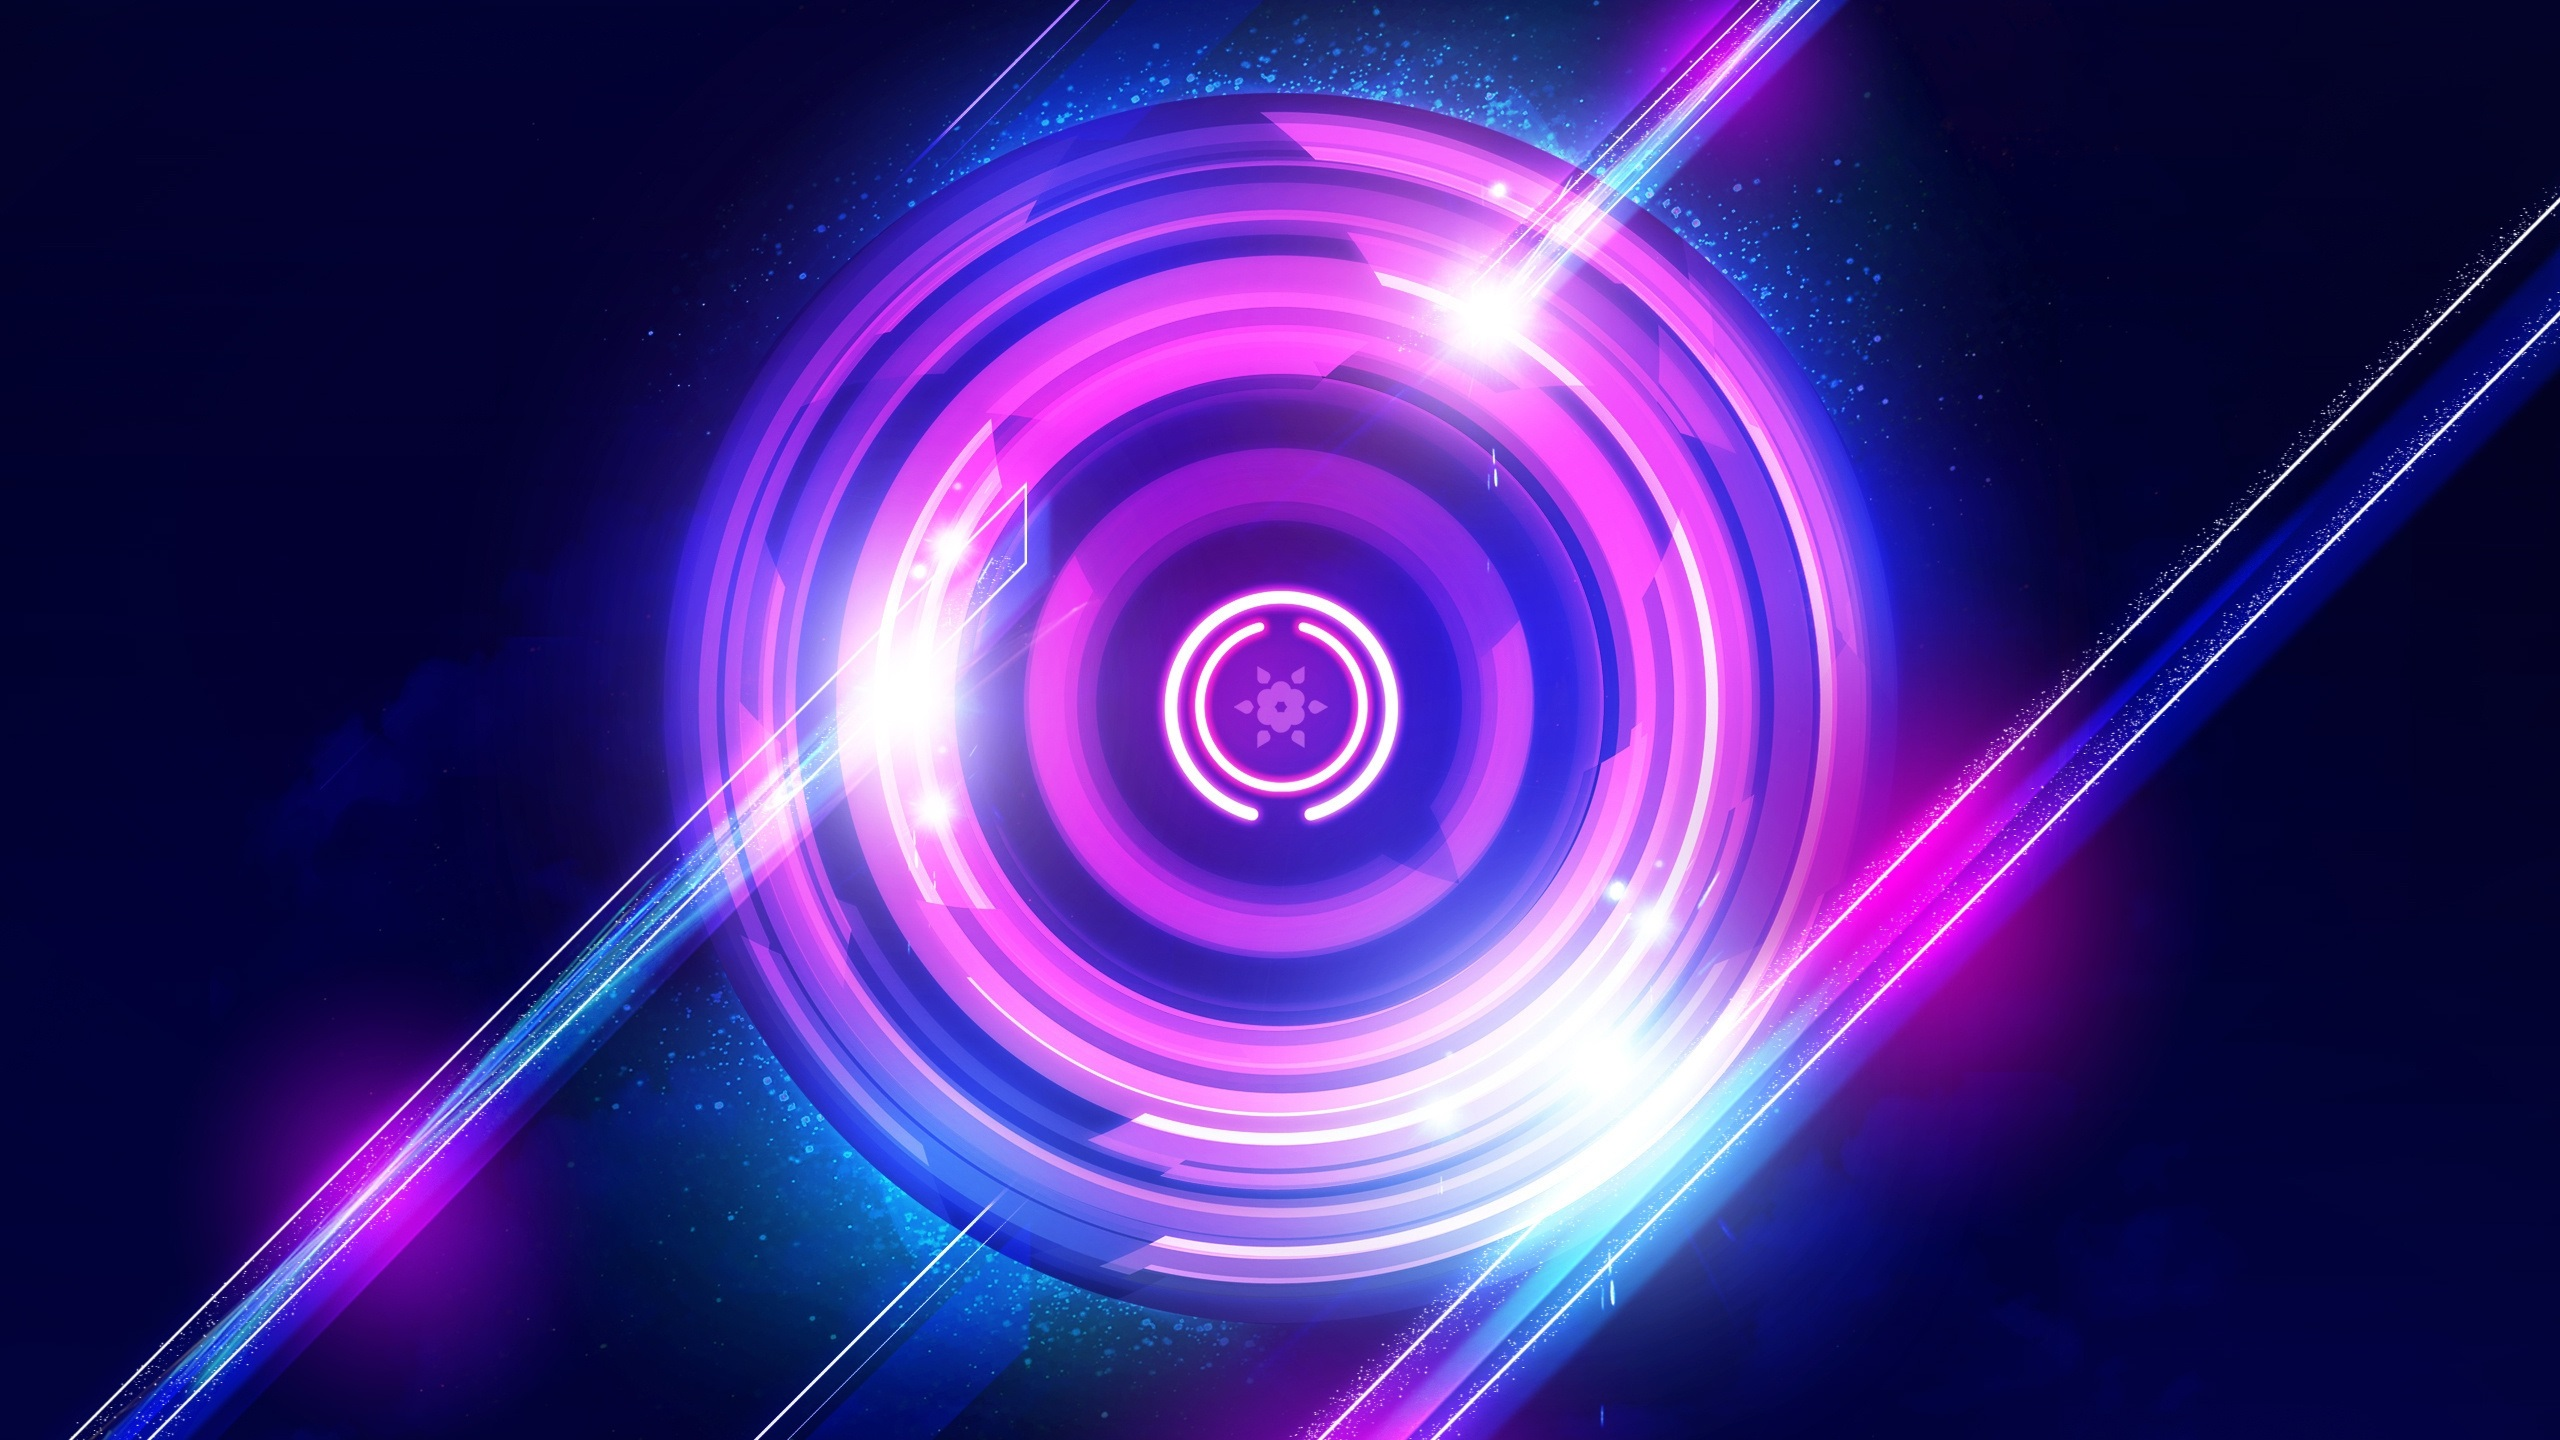 Wallpaper Purple Circles Light Abstract 2560x1440 Qhd